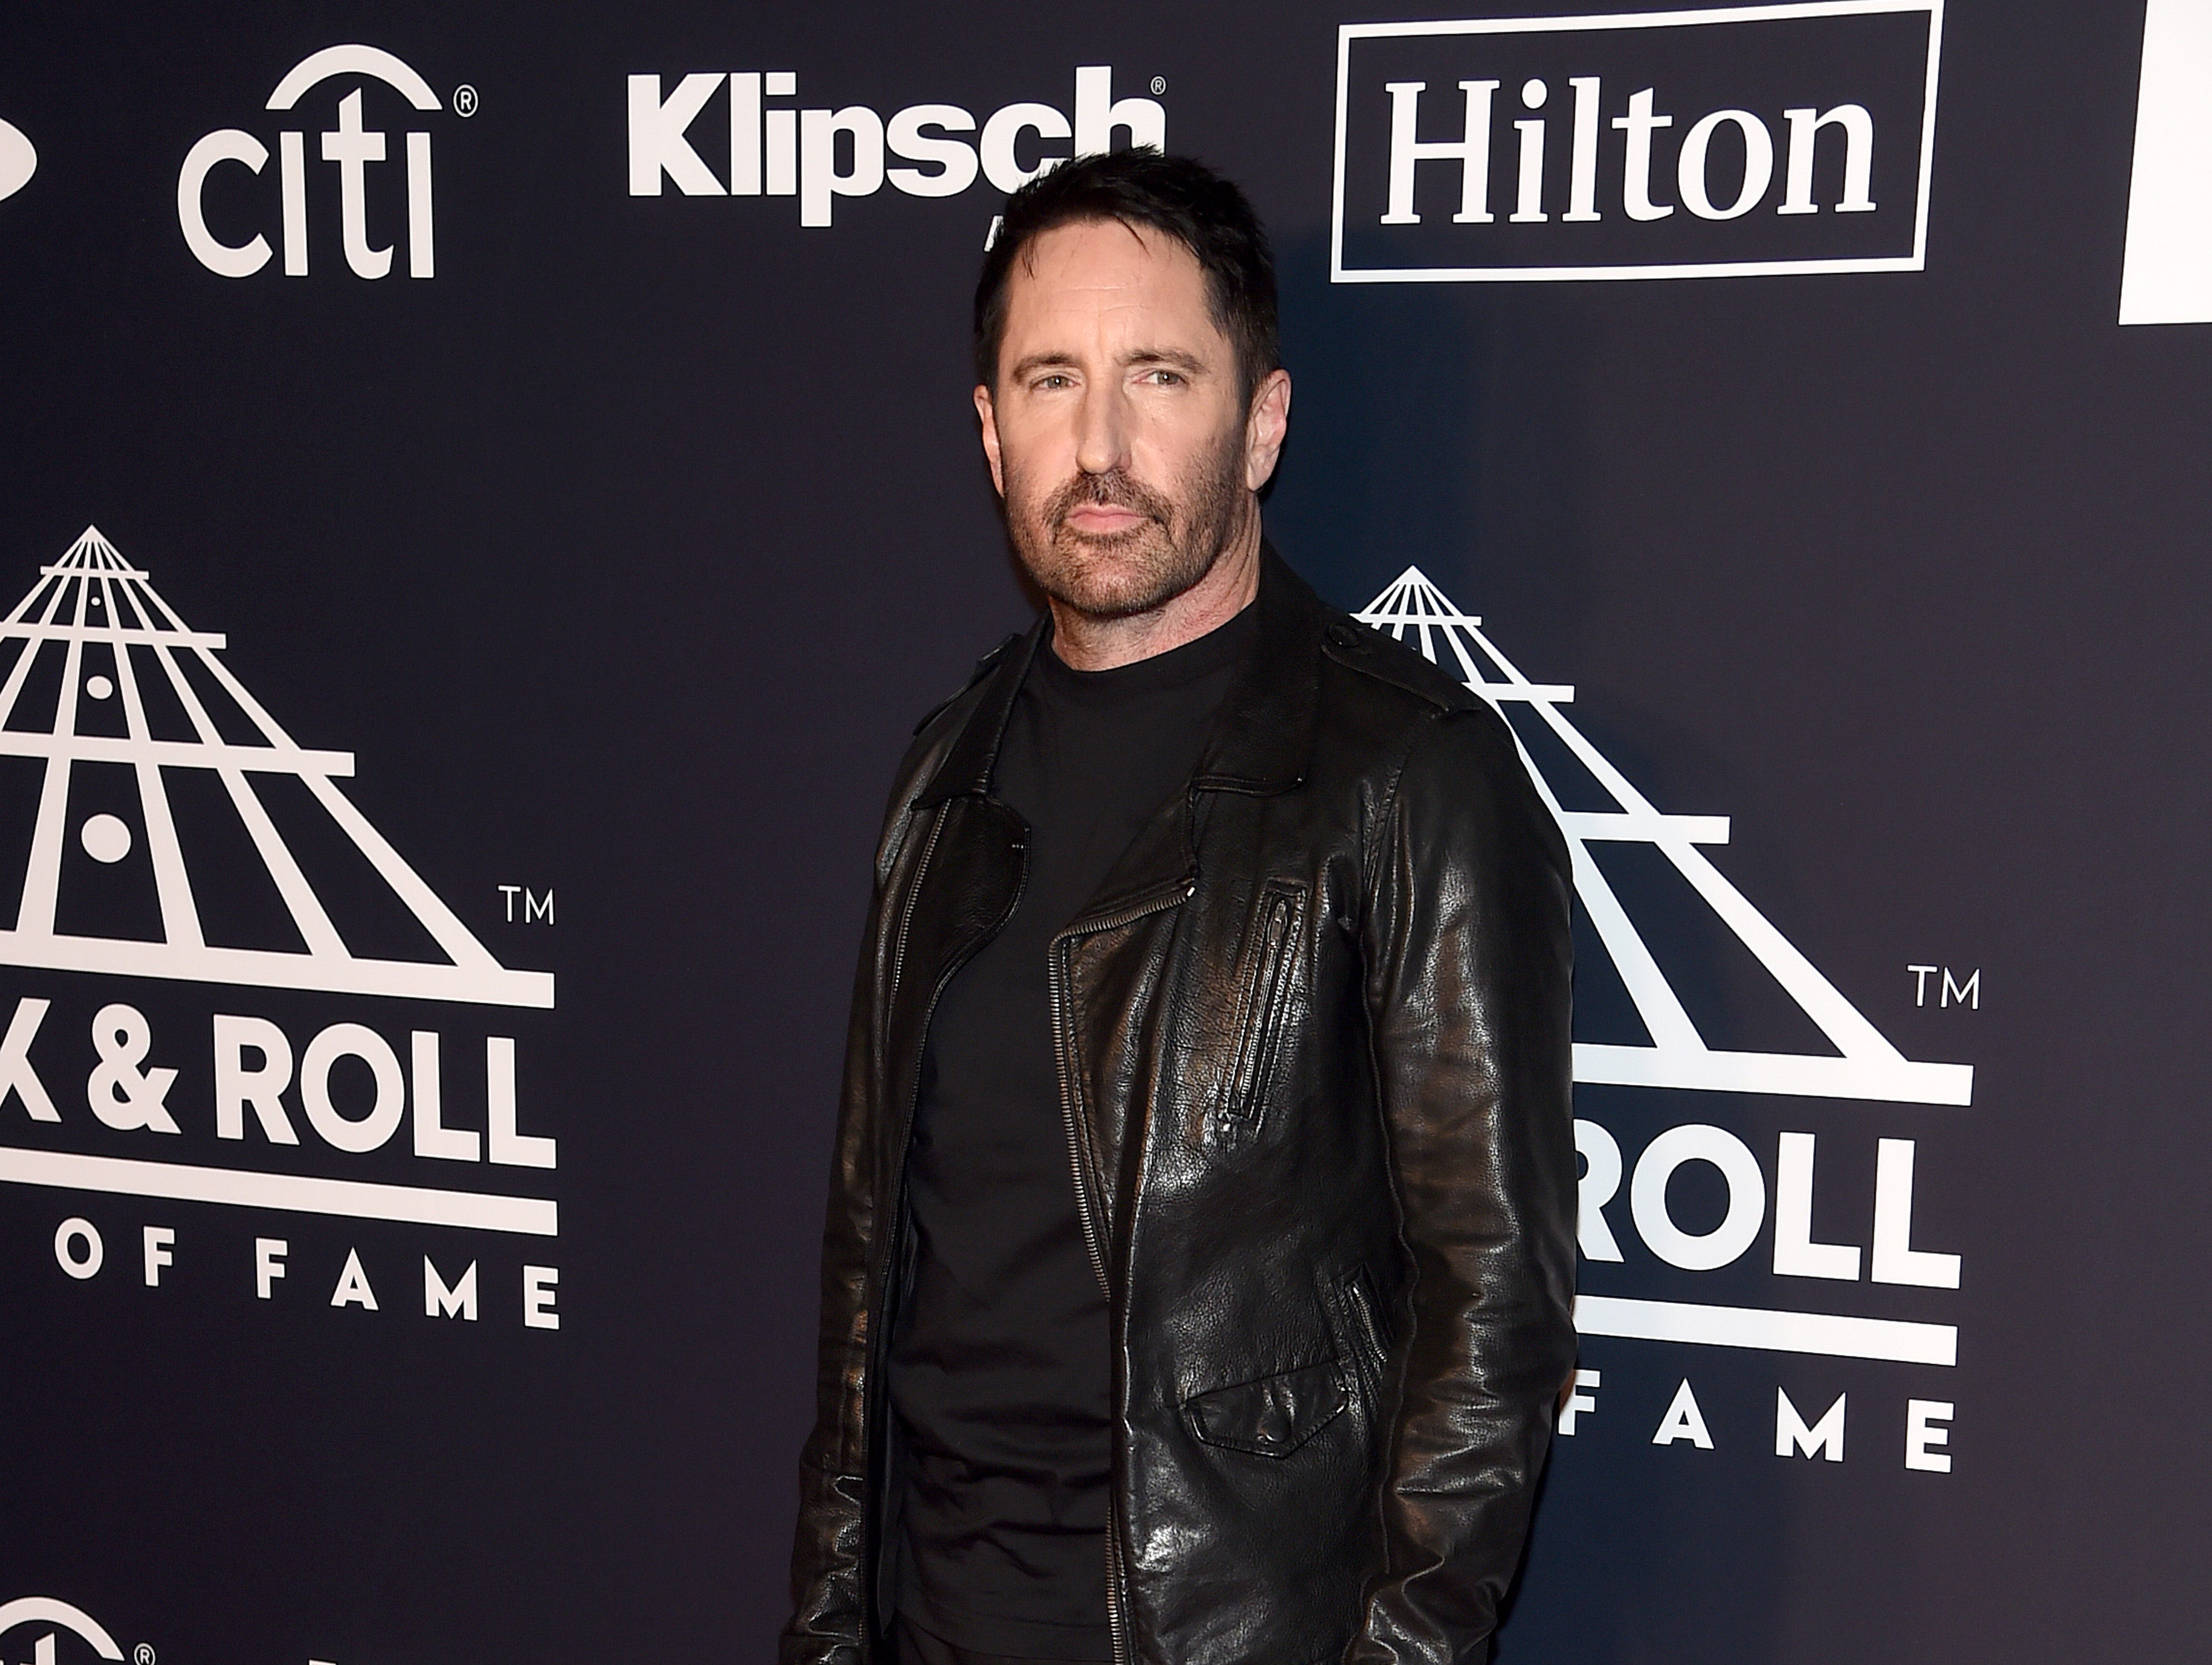 NEW YORK, NEW YORK - MARCH 29: Trent Reznor attends the 2019 Rock & Roll Hall Of Fame Induction Ceremony at Barclays Center on March 29, 2019 in New York City. (Photo by Jamie McCarthy/WireImage) ORG XMIT: 775320639 ORIG FILE ID: 1139163708